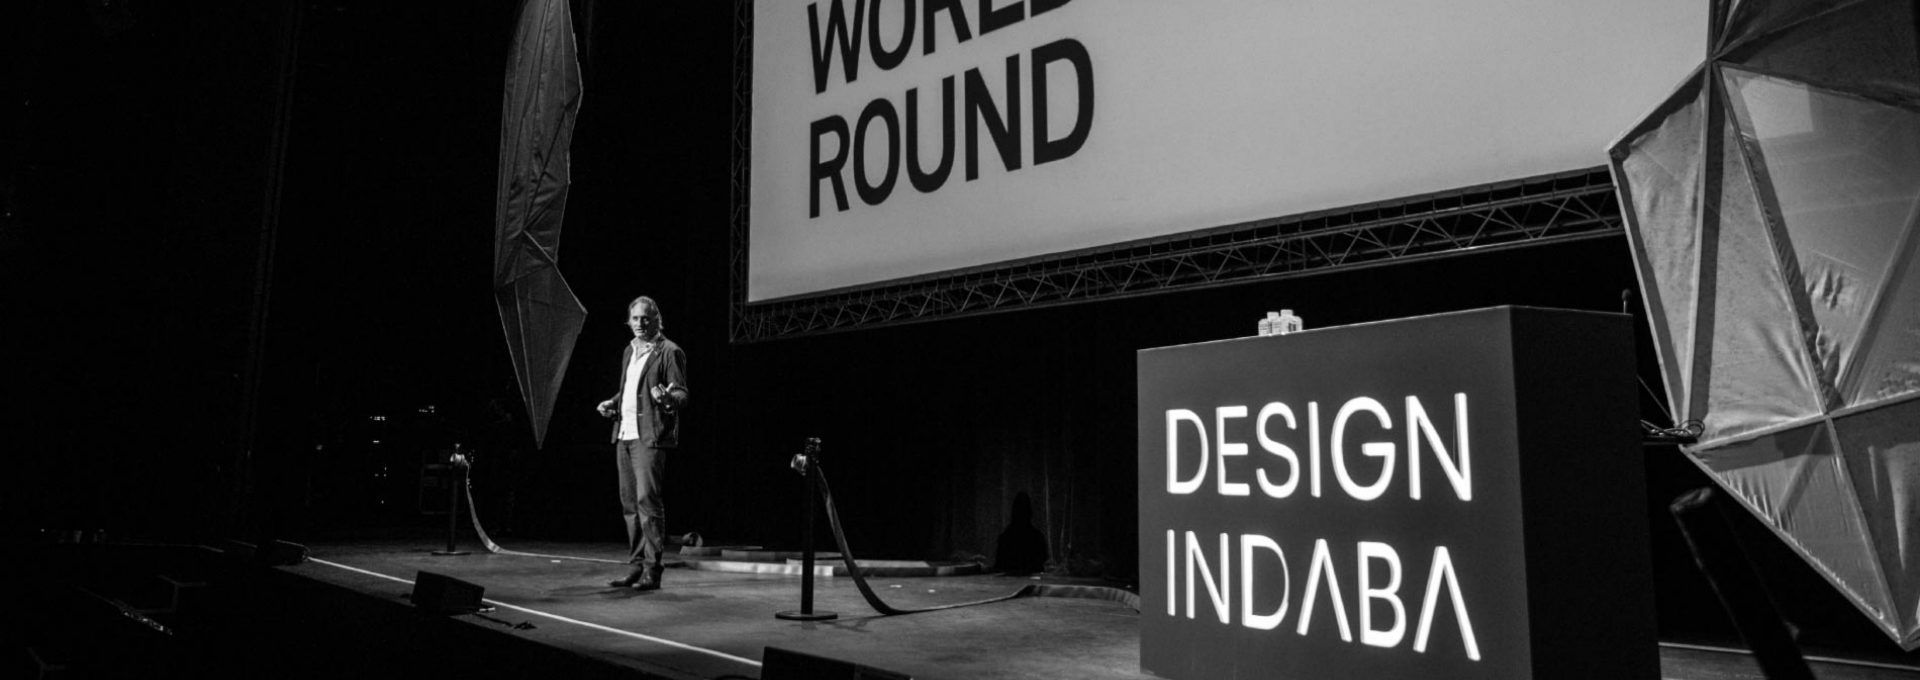 DESIGN AGENDA: Get Ready for the World's Best Design Events in March 2018 ➤ Discover the season's newest design news and inspiration ideas. Visit Daily Design News and subscribe our newsletter! #dailydesignnews #designnews #bestdesignevets #designevents #designagenda